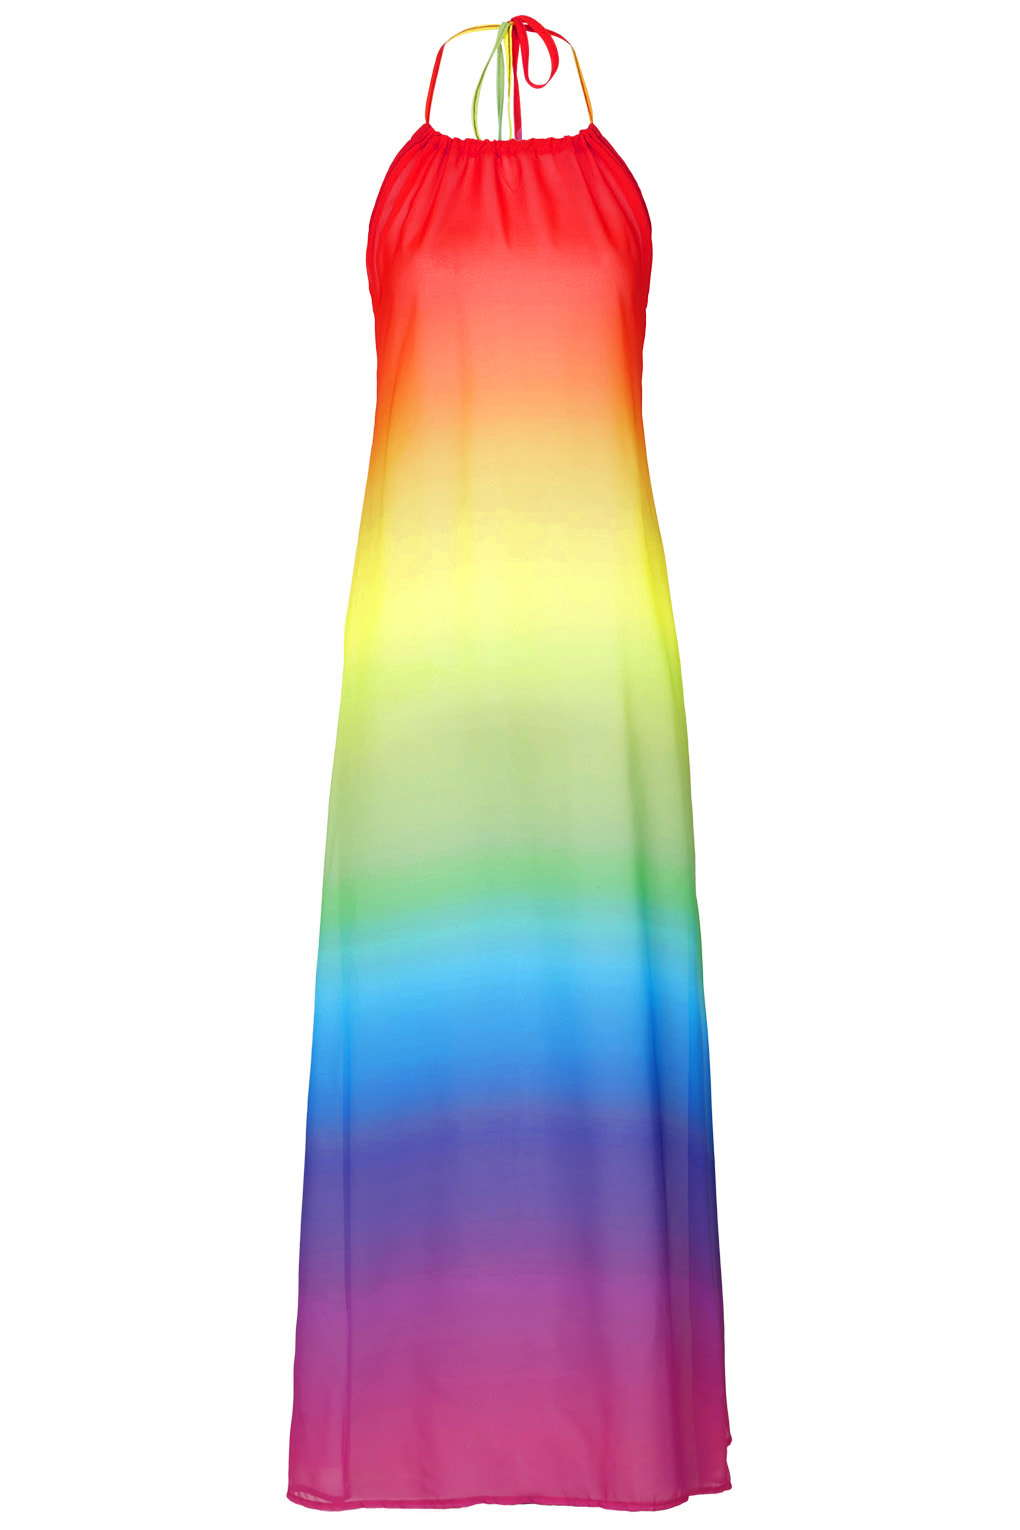 Topshop - Rainbow Chiffon Maxi Beach by Jaded London 34